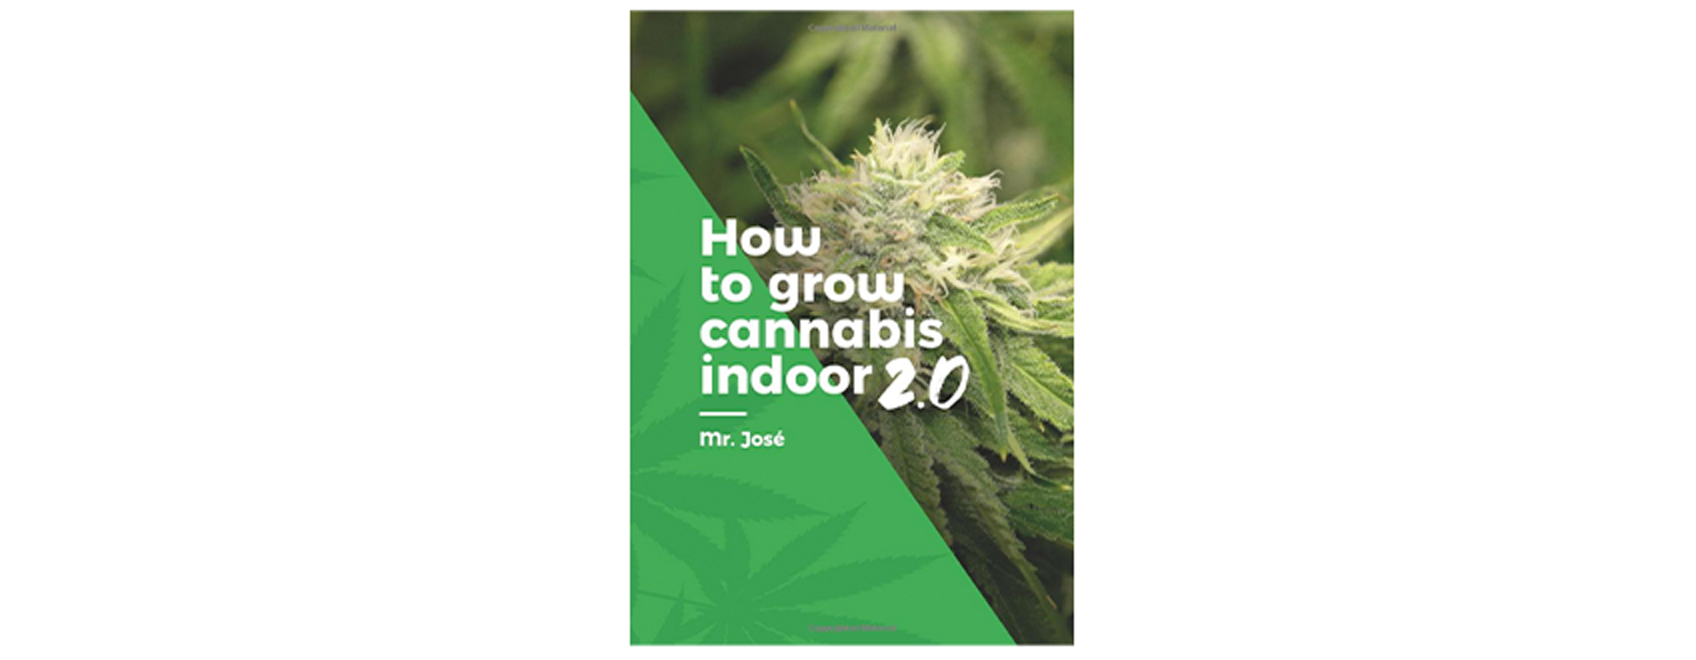 How to grow cannabis indoors 2.0